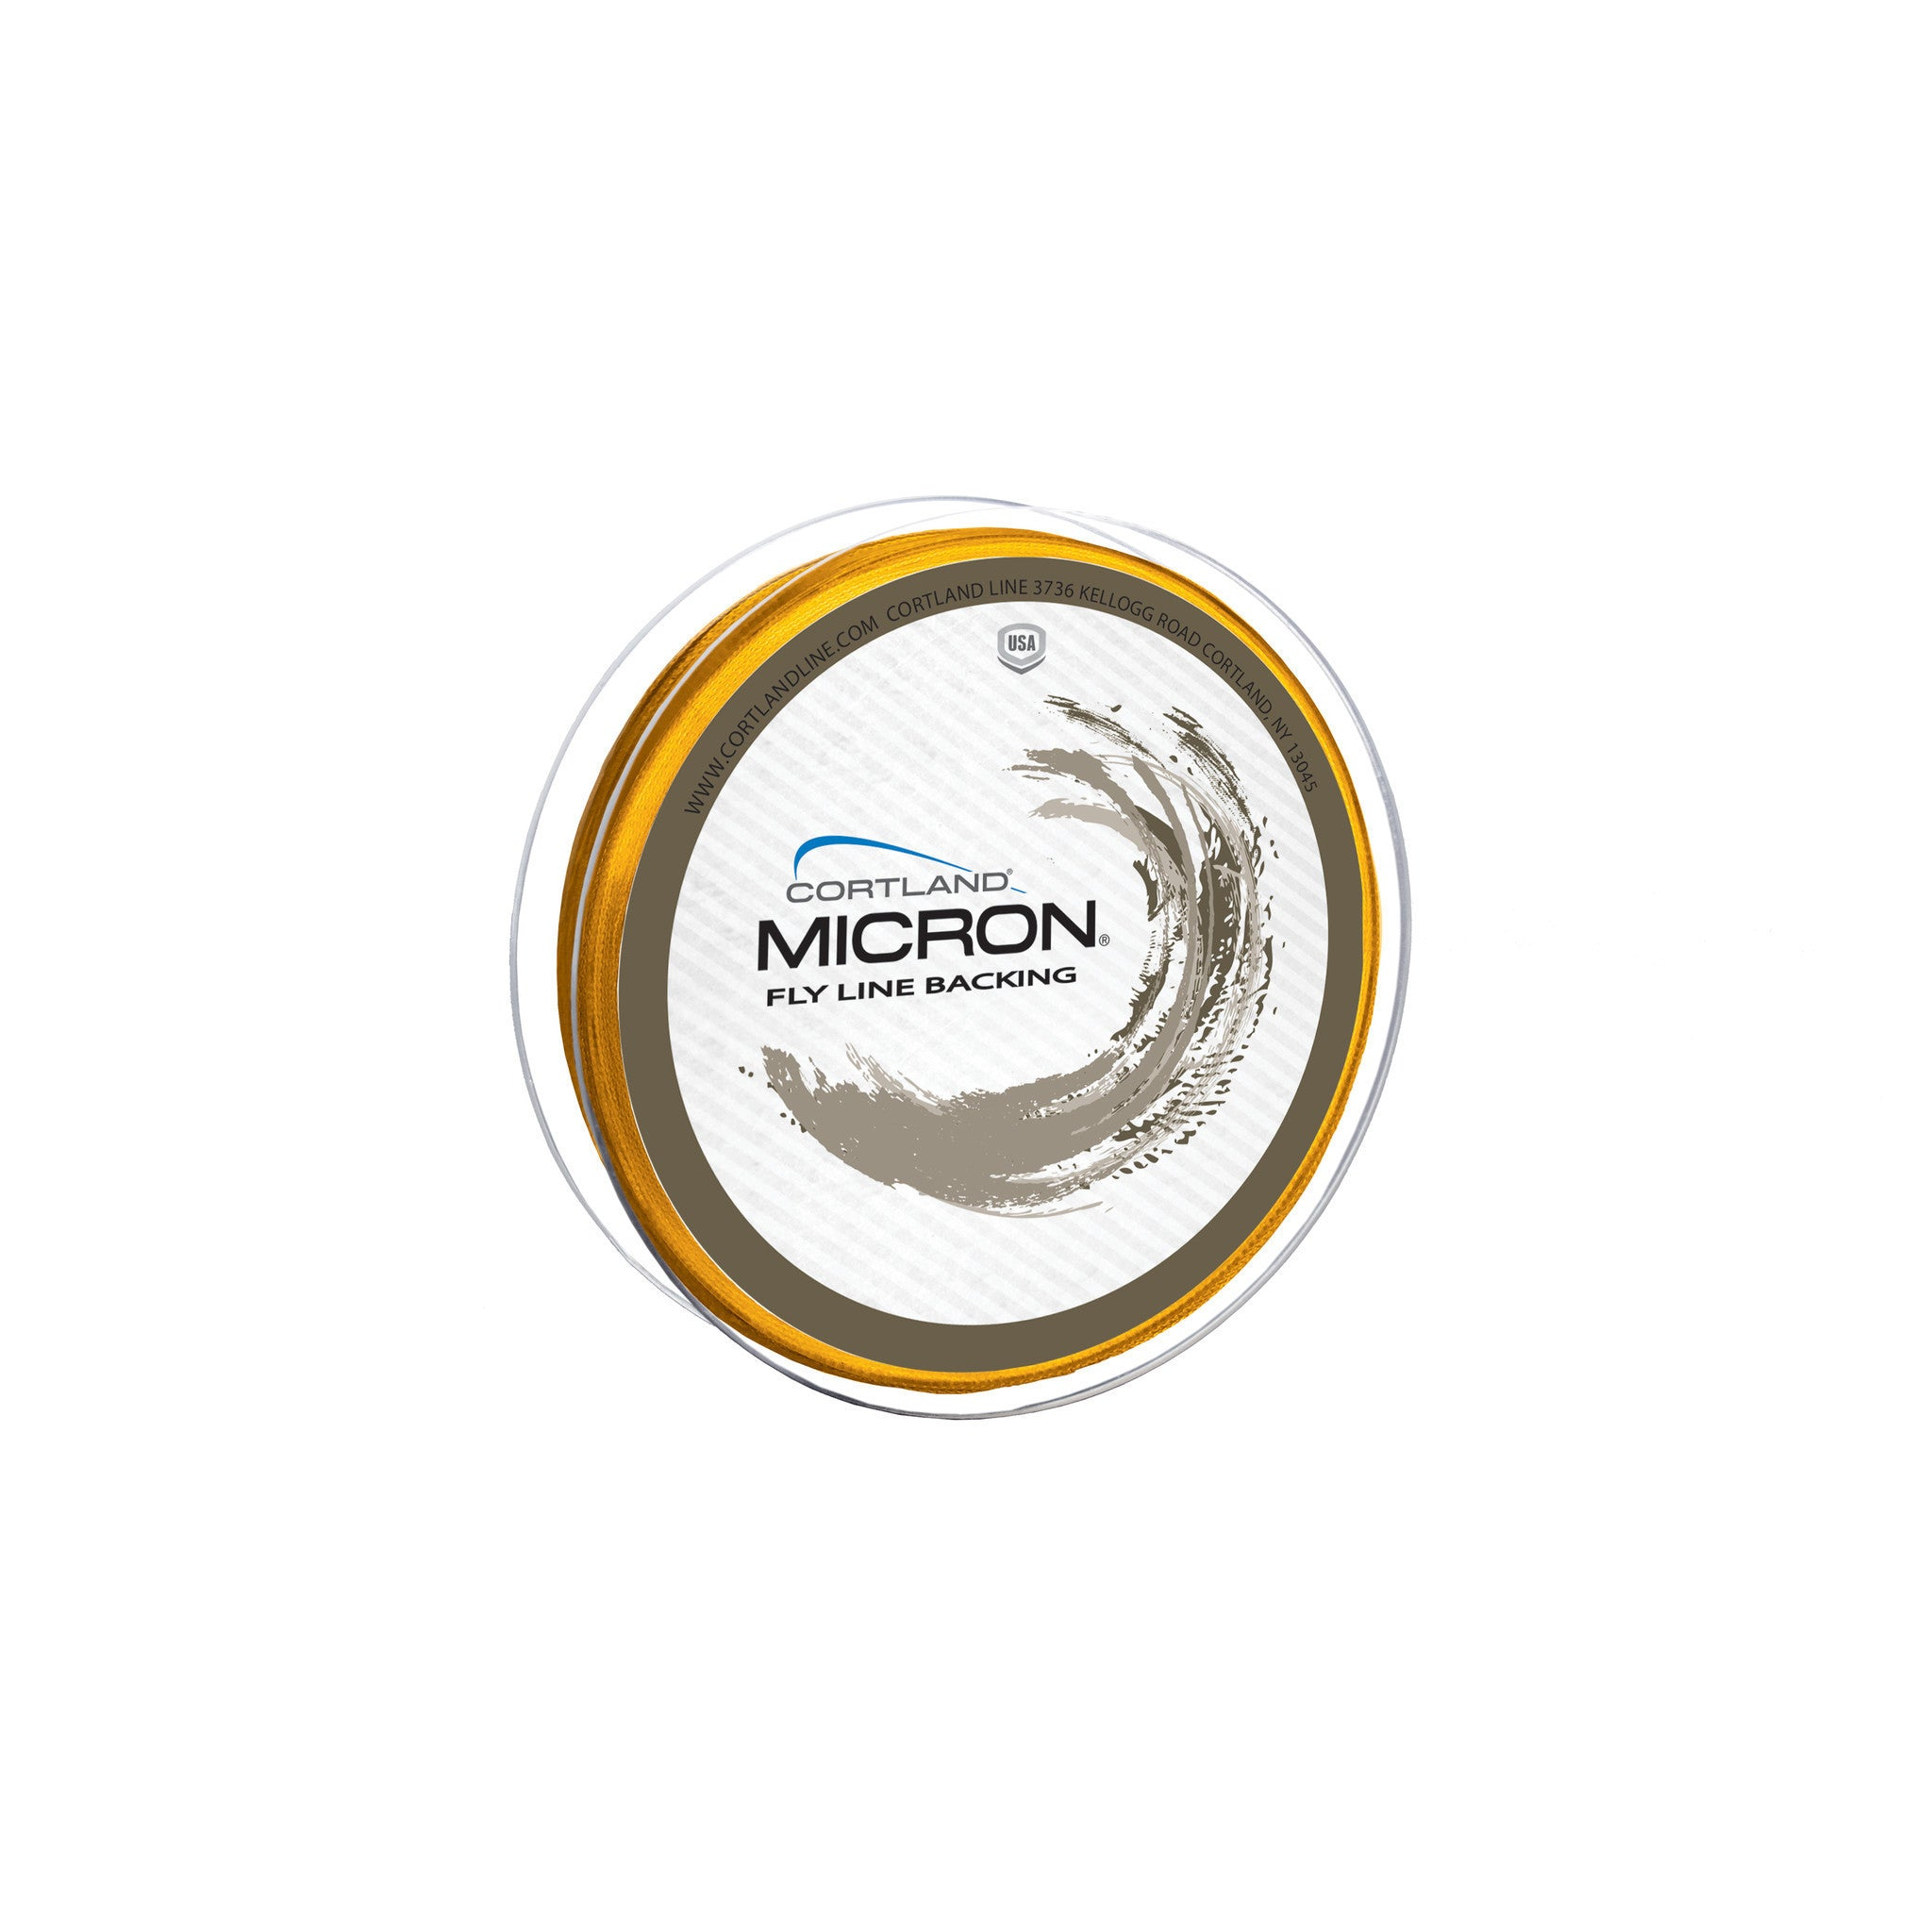 MICRON FLY LINE BACKING - The TroutFitter Fly Shop